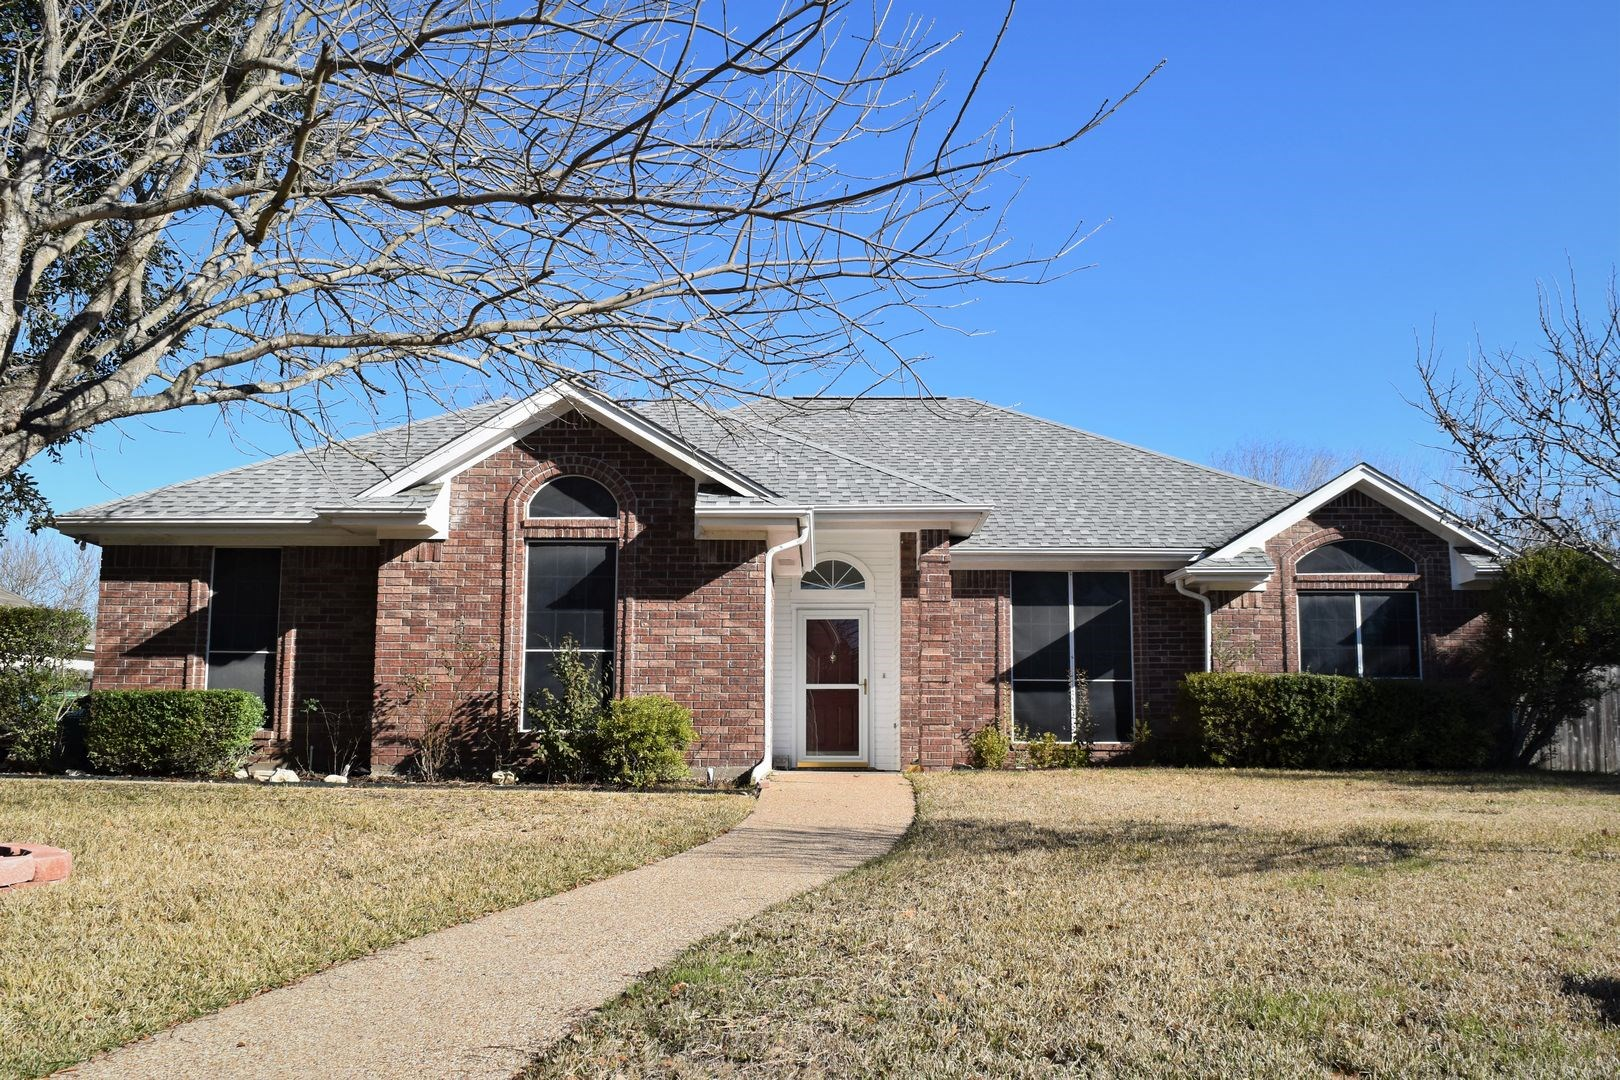 Home for Sale in Hewitt Texas, McLennan County